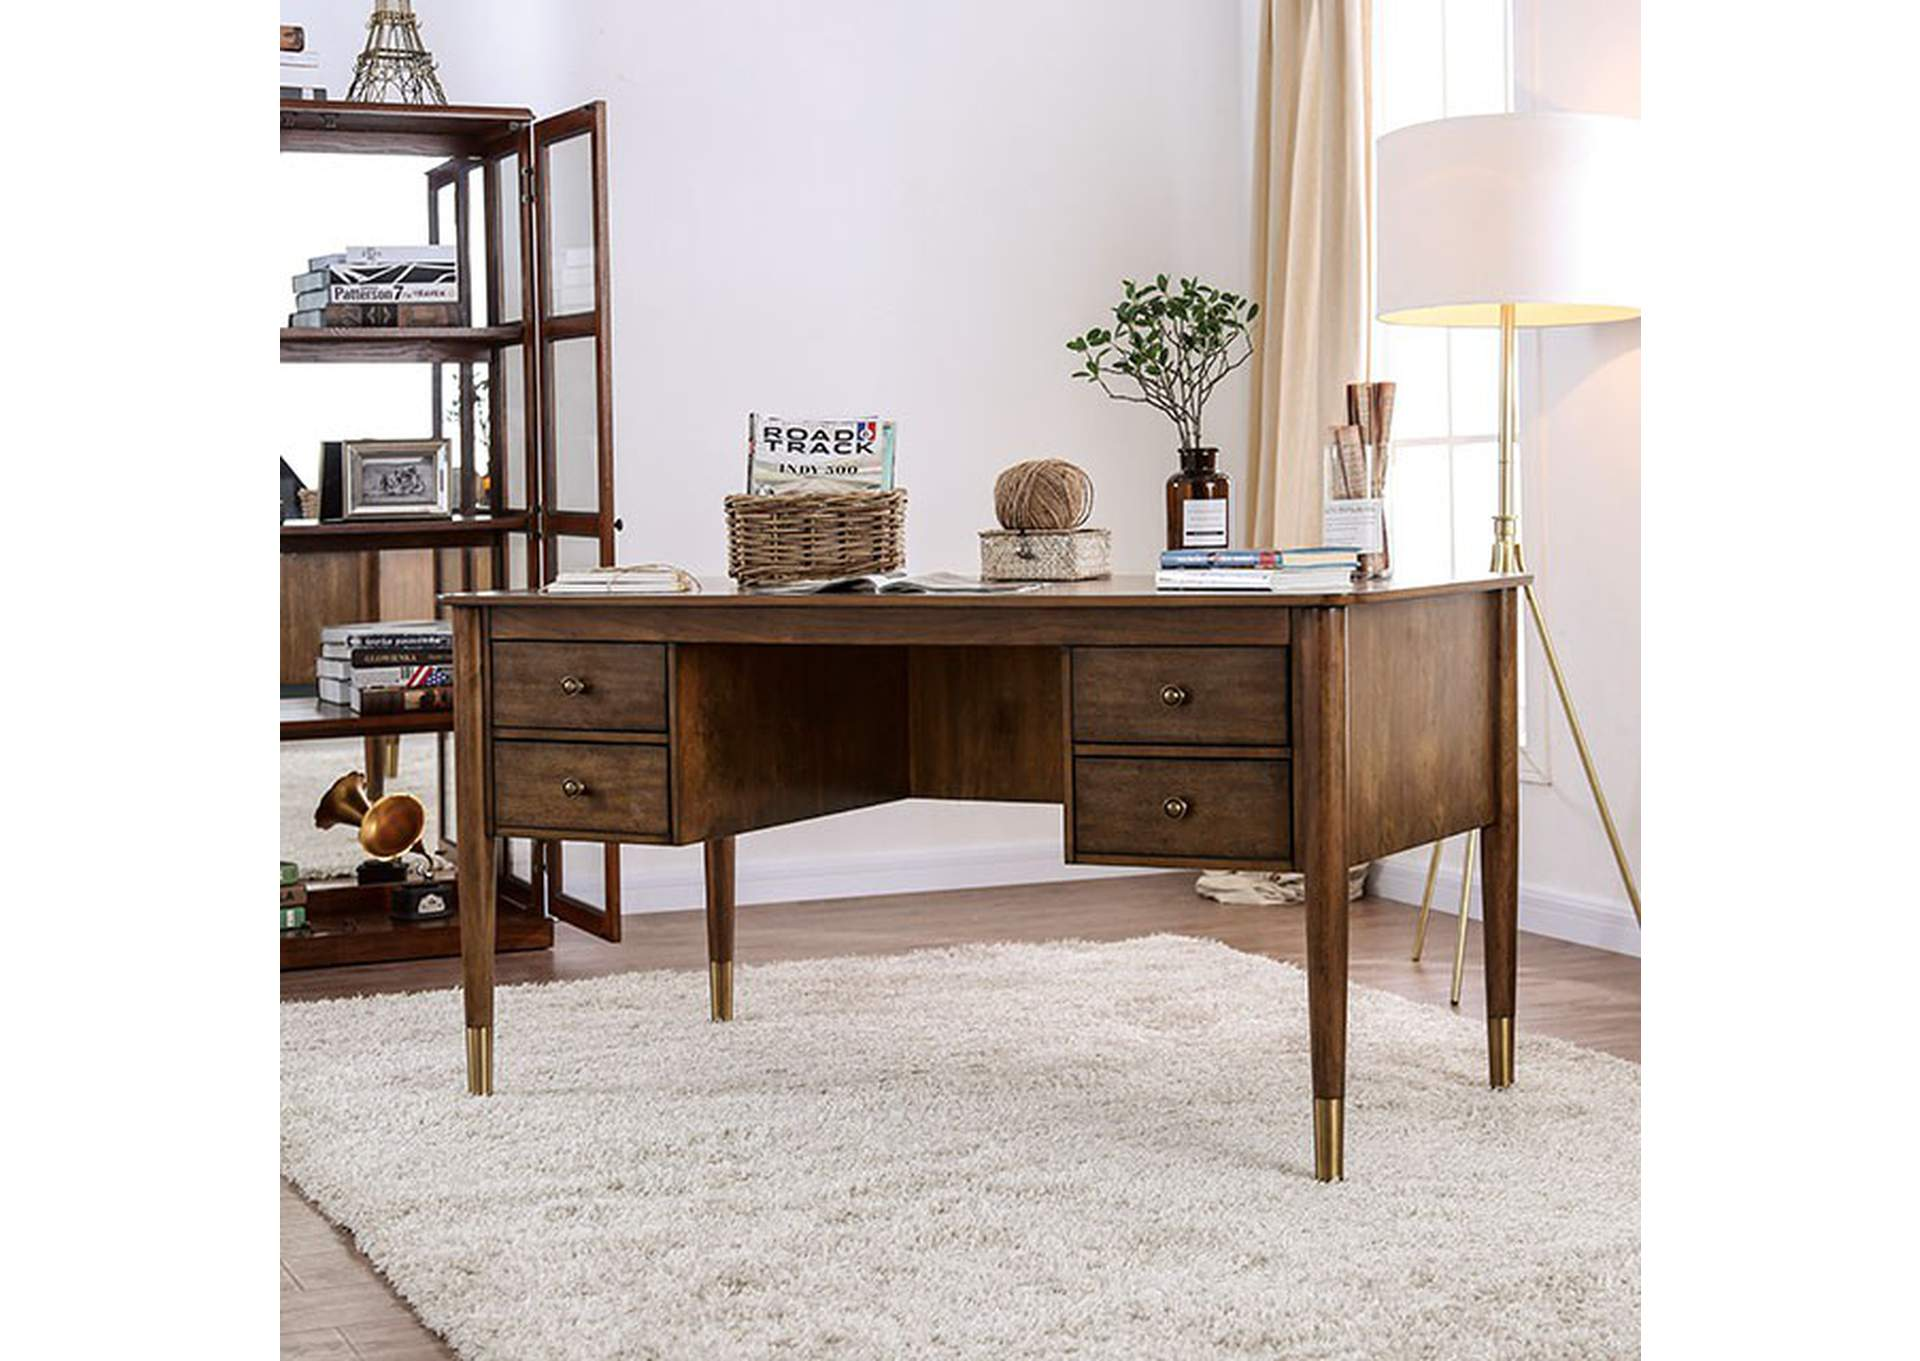 Reliance Antique Oak Desk,Furniture of America